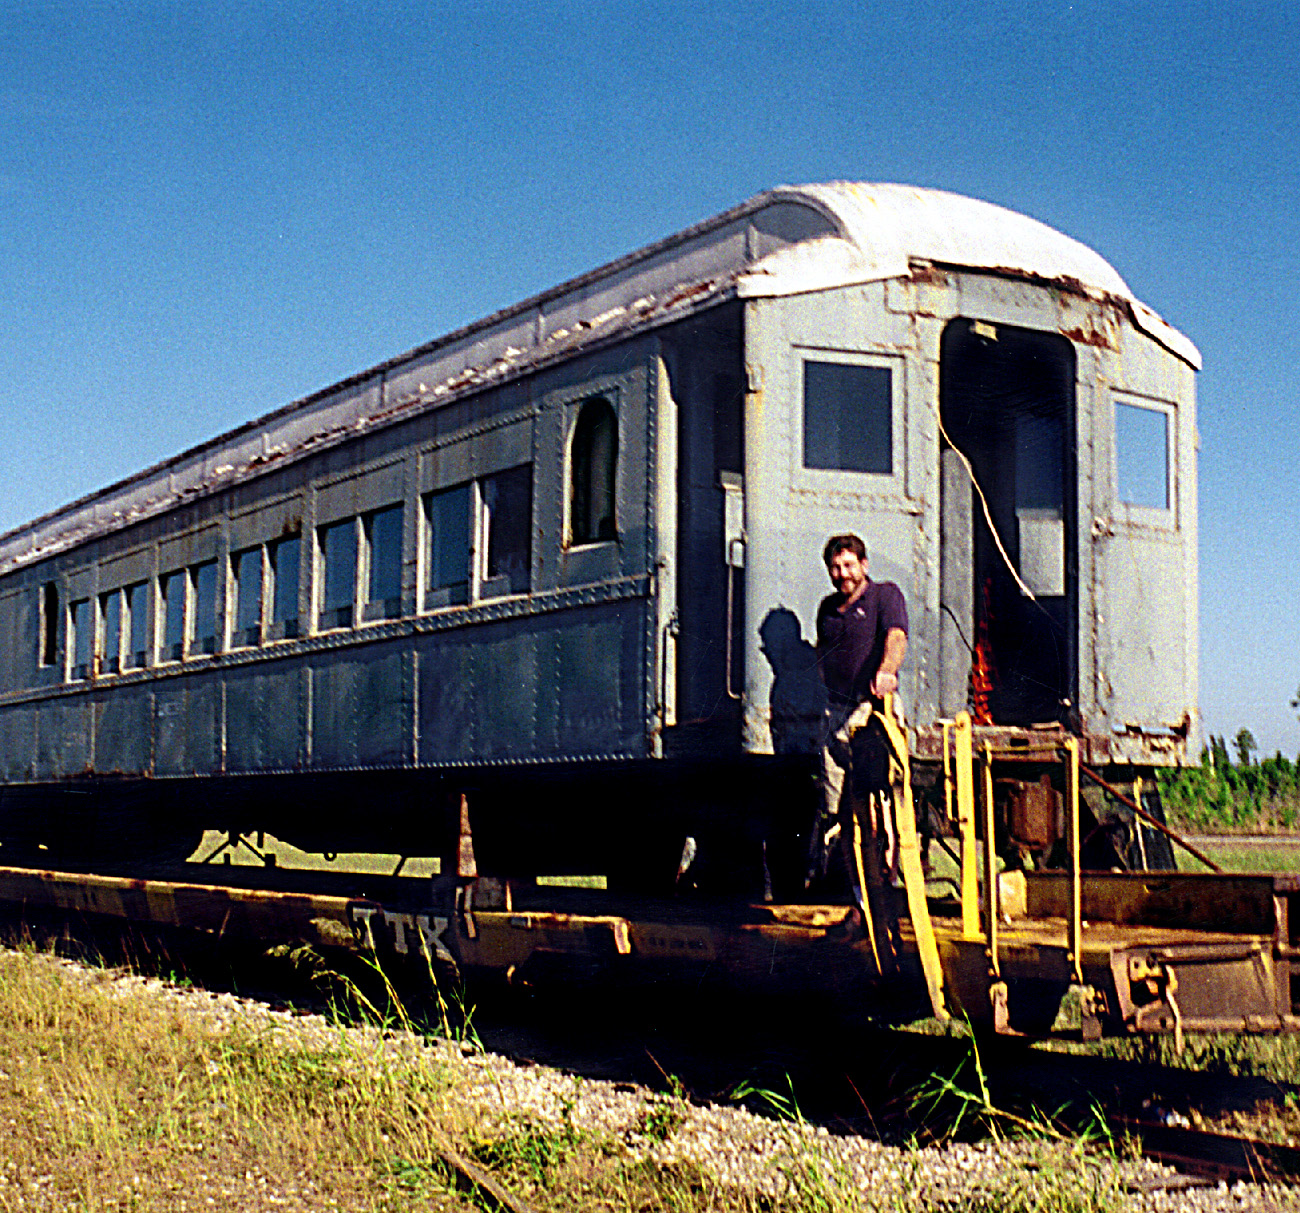 Jim Crow Passenger Car